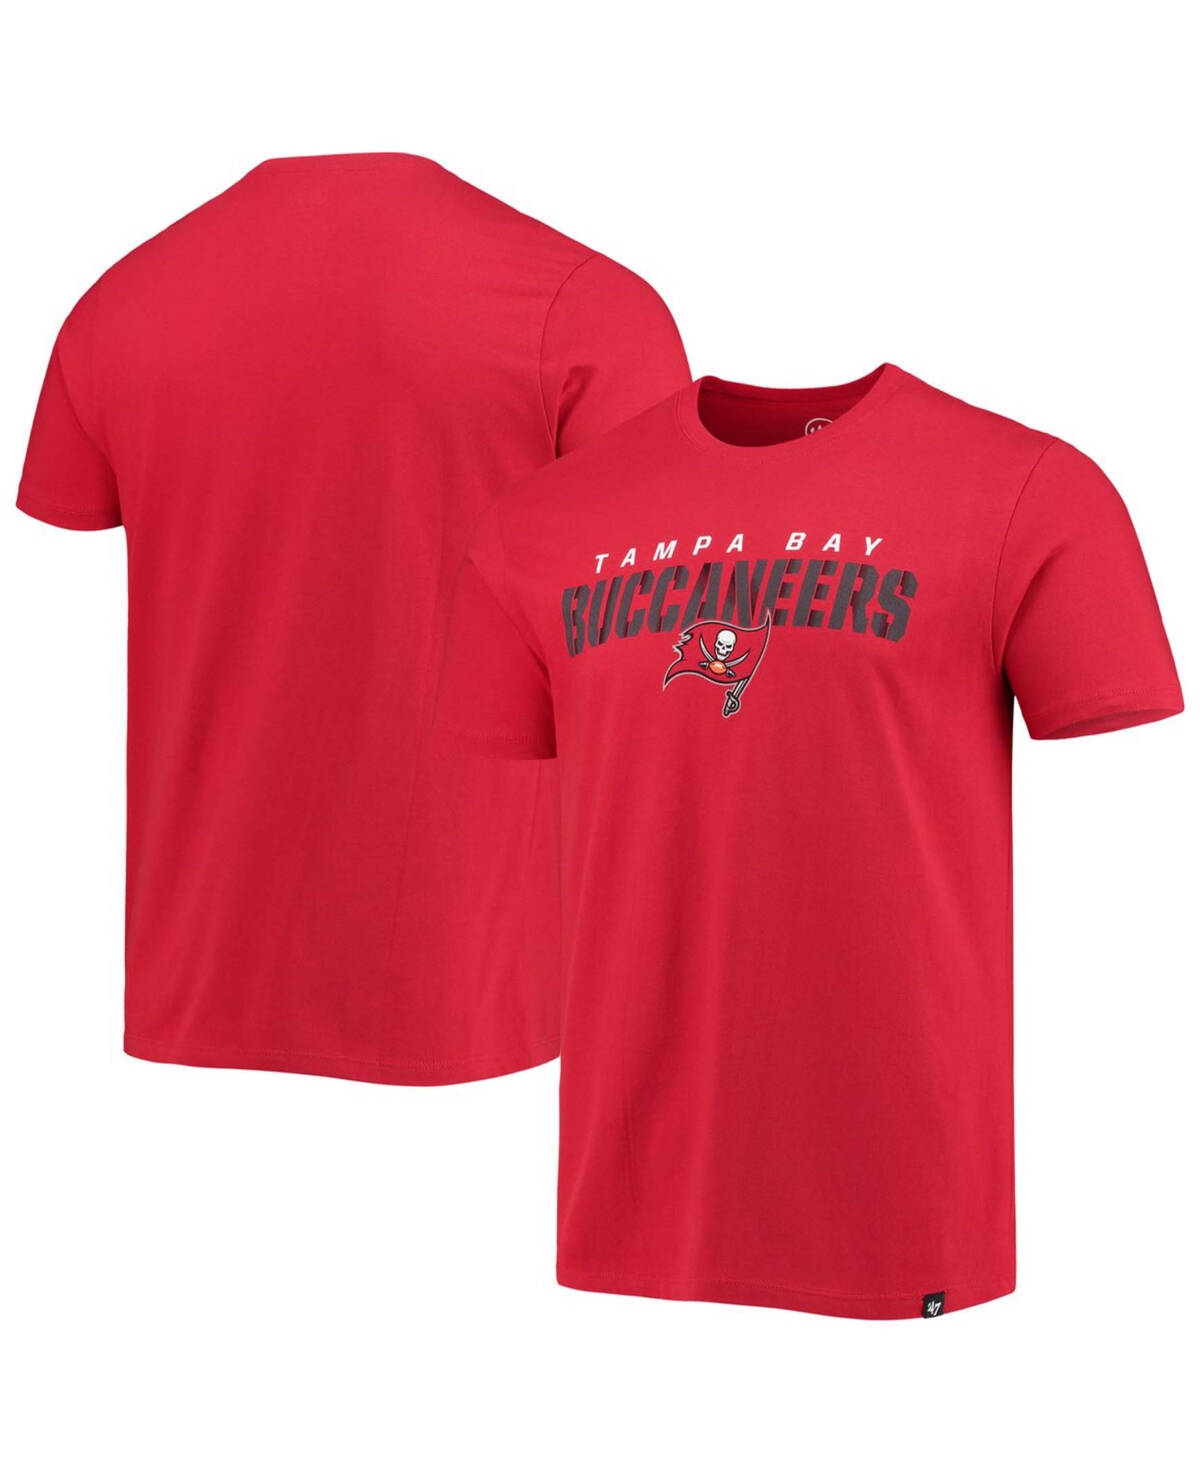 Mens Red Tampa Bay Buccaneers Traction Super Rival T-shirt